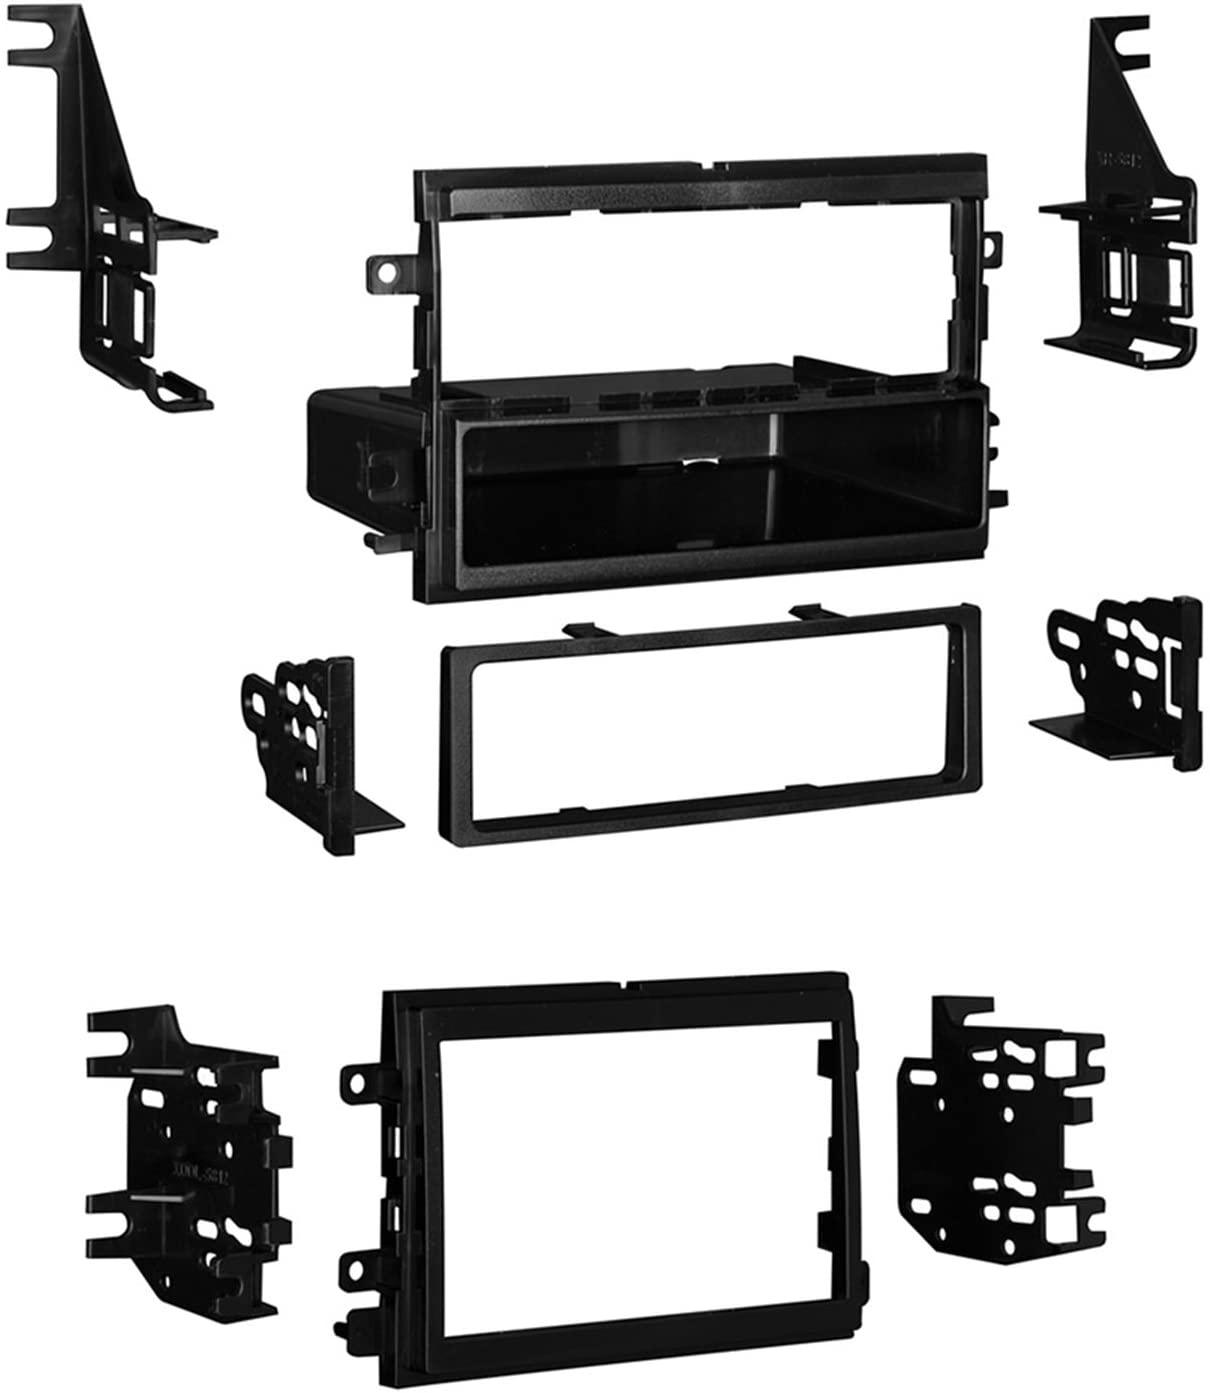 Metra 99-5815 Ford/Lincoln/Mercury Installation Dash Kit for Single DIN/Double DIN/ISO Radios